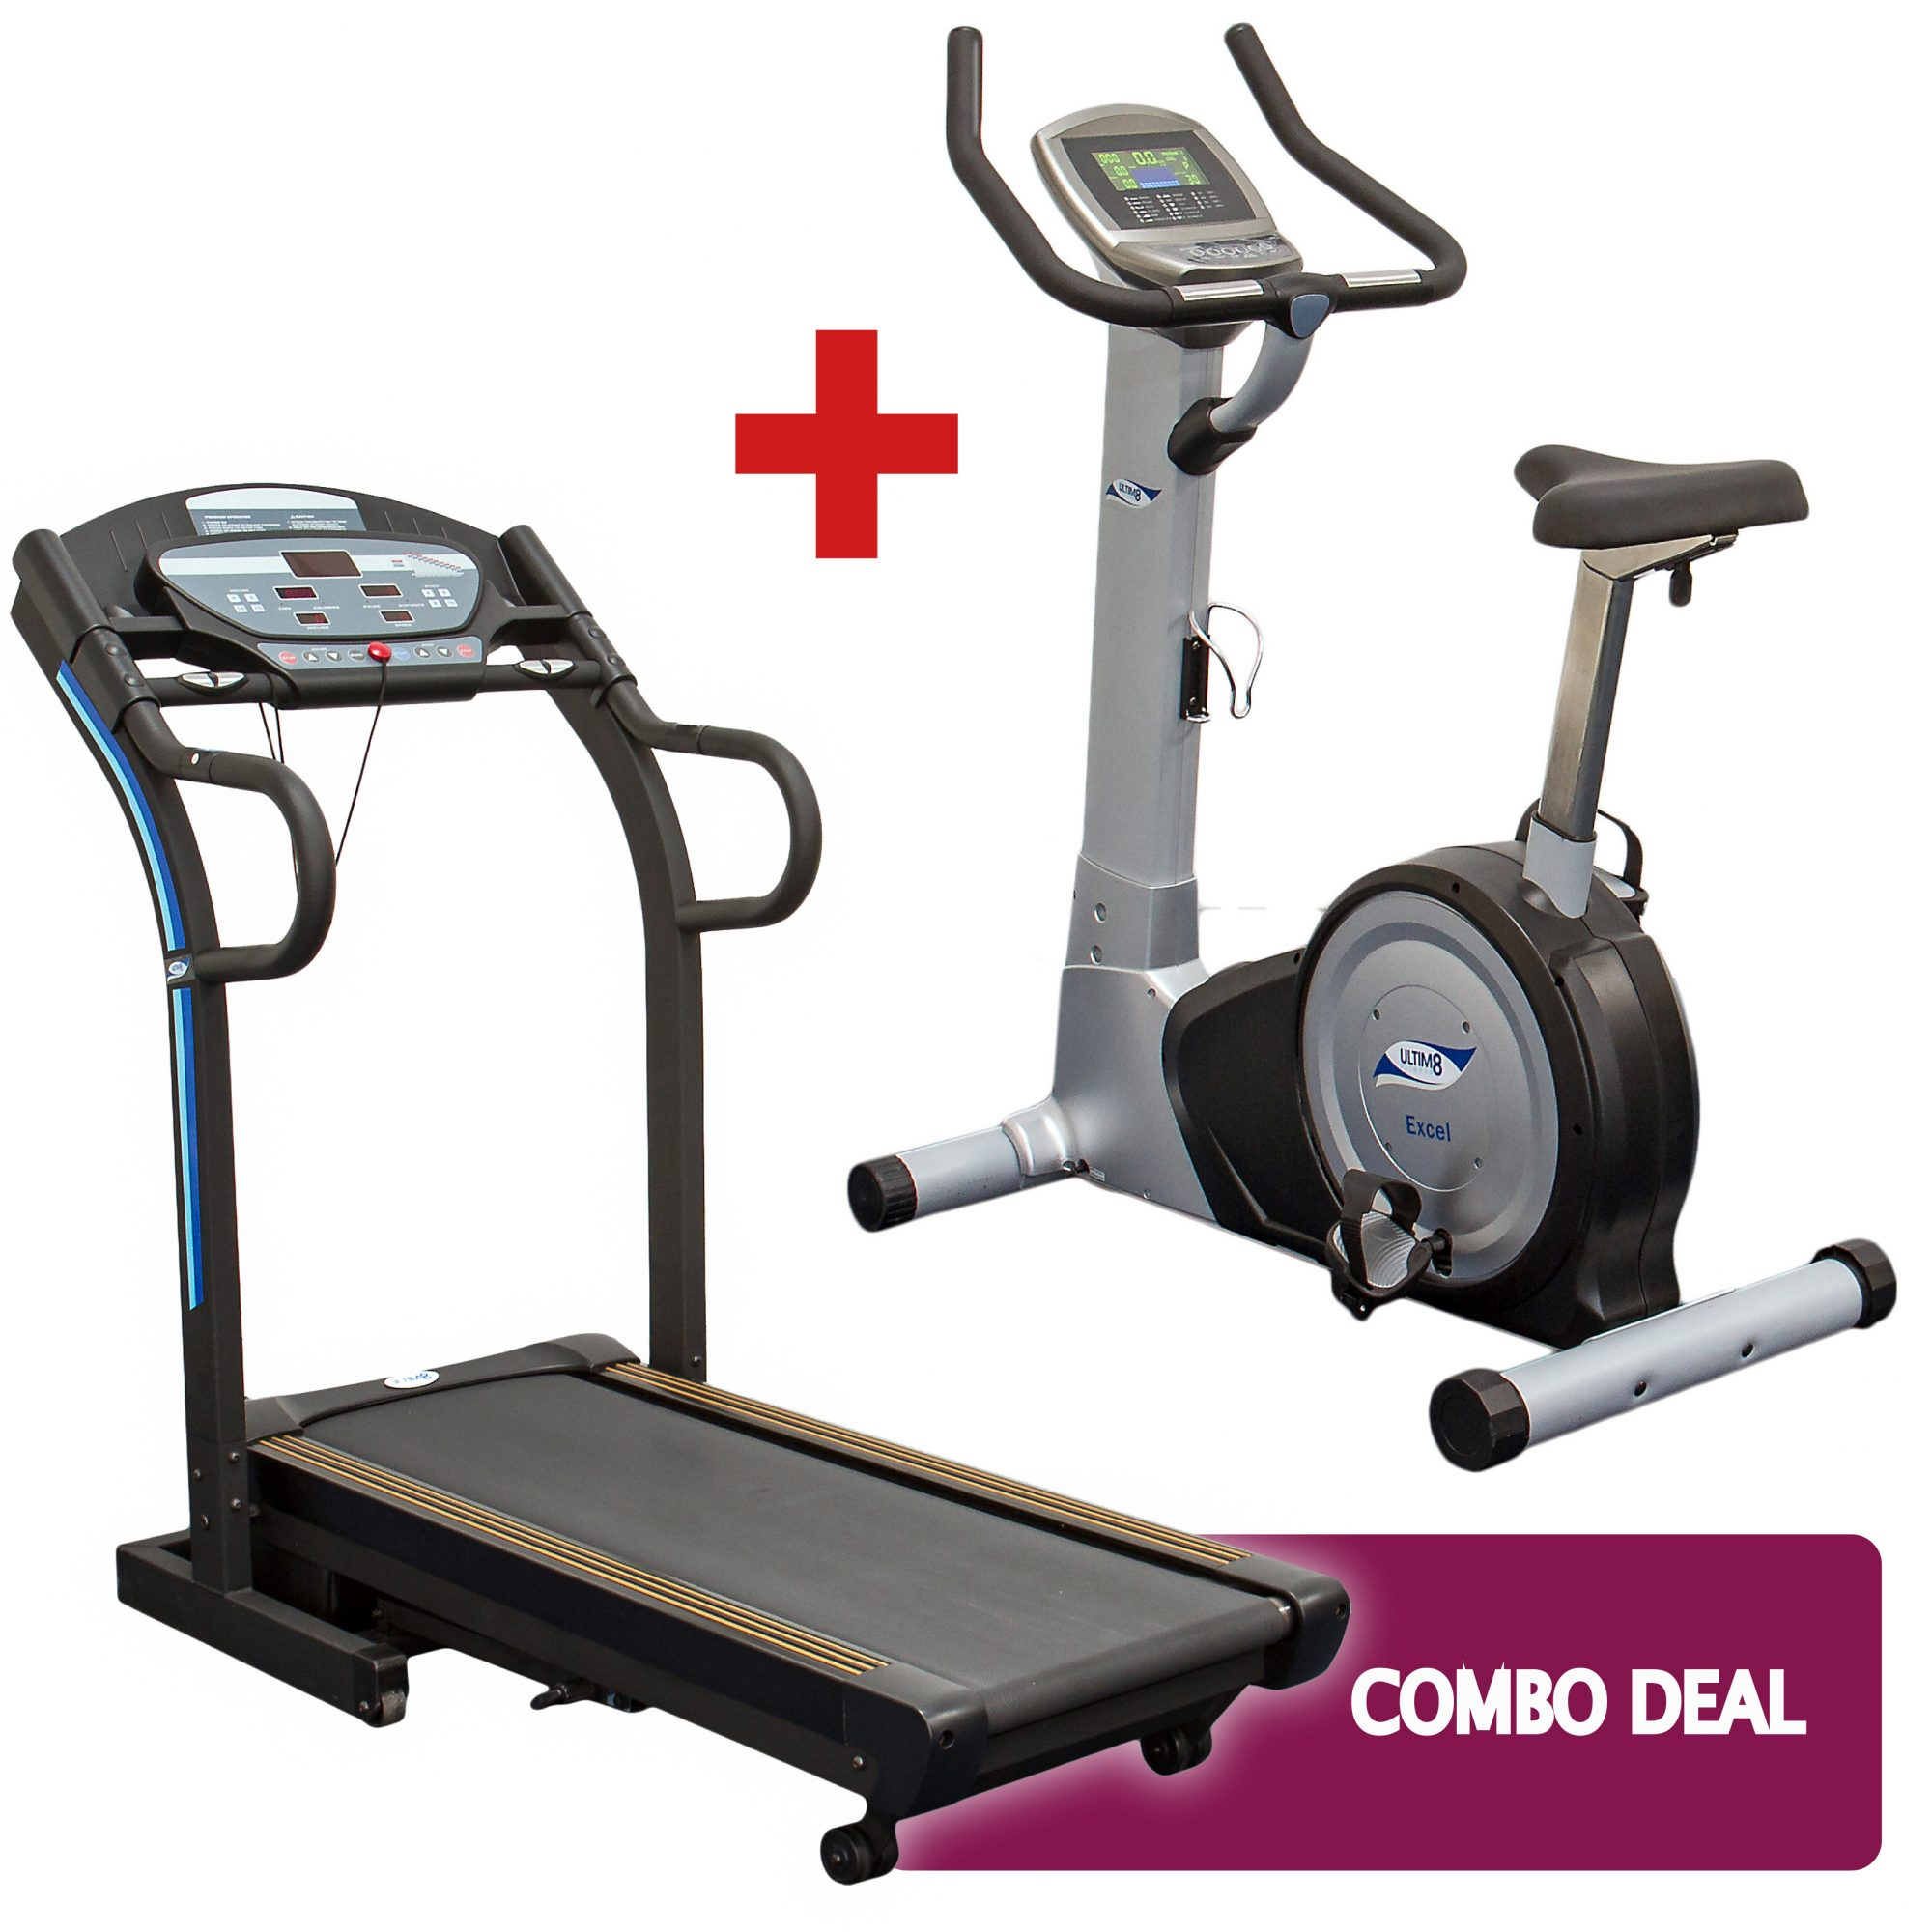 f51b9591c3b Treadmill and Exercise Bike Combo Deal. Expand